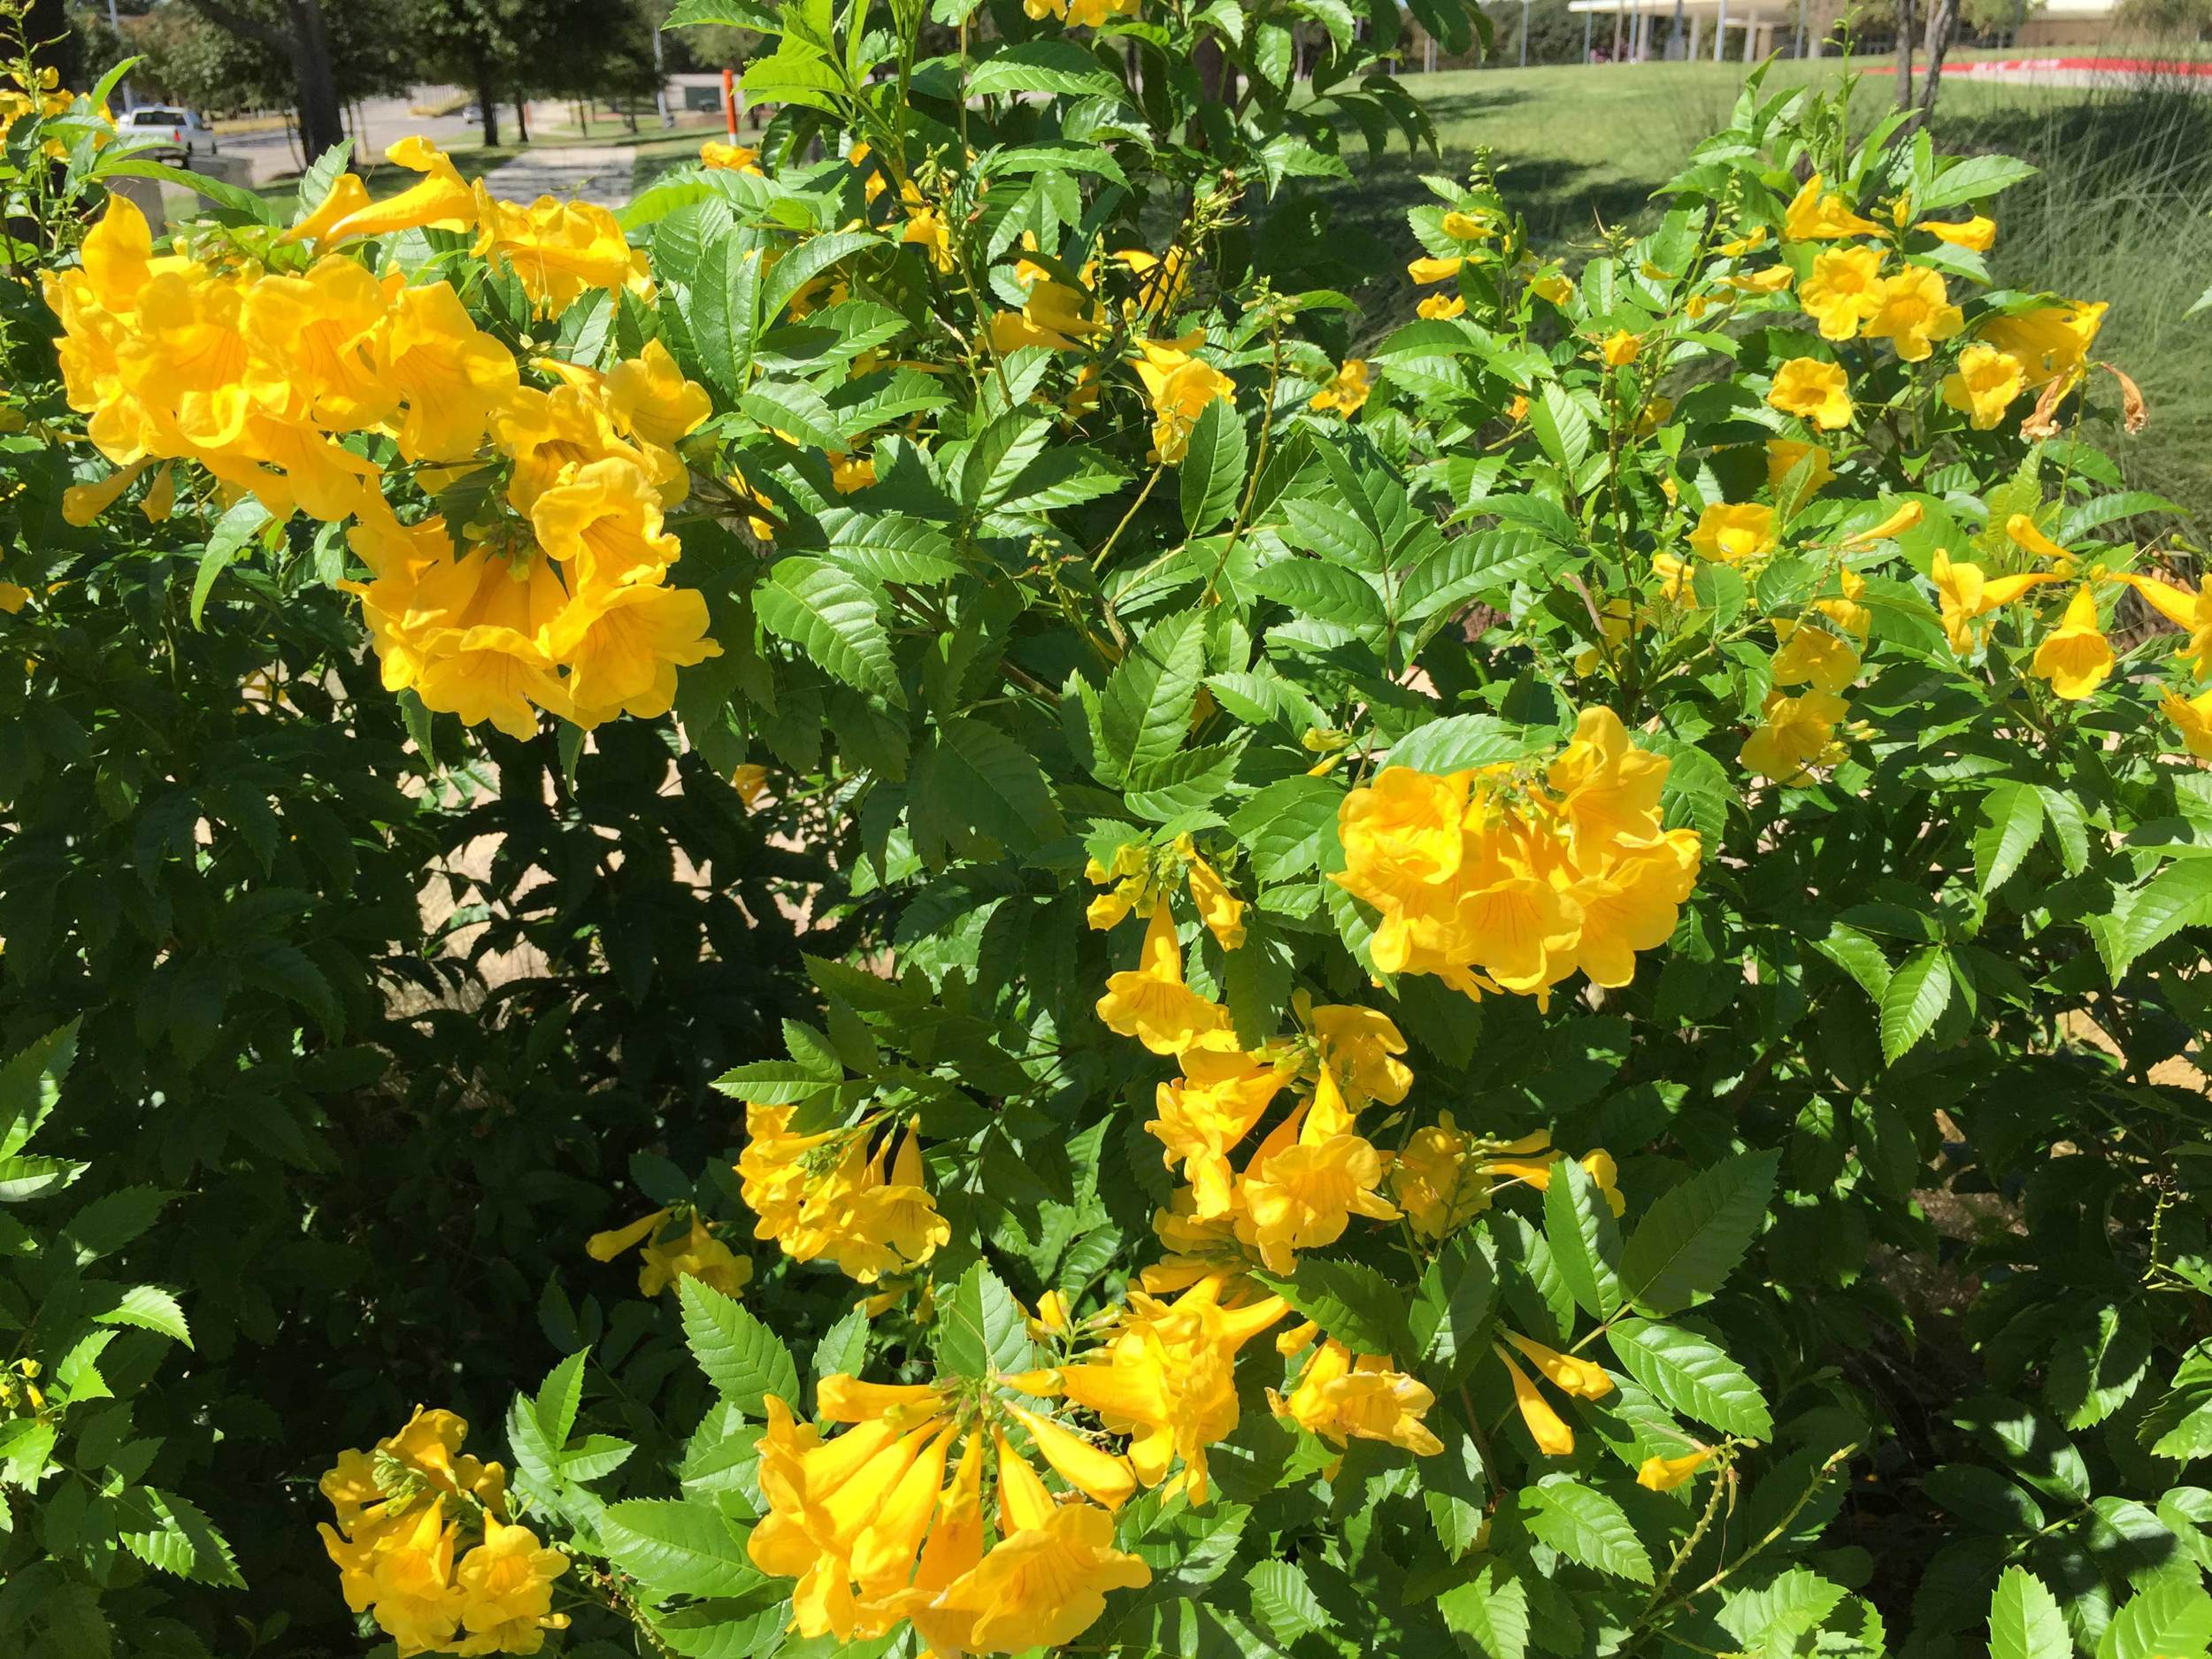 Gold Star Esperanza (Tecoma stans 'Gold Star)  - A sun loving perennial with bright yellow blooms throughout the summer.